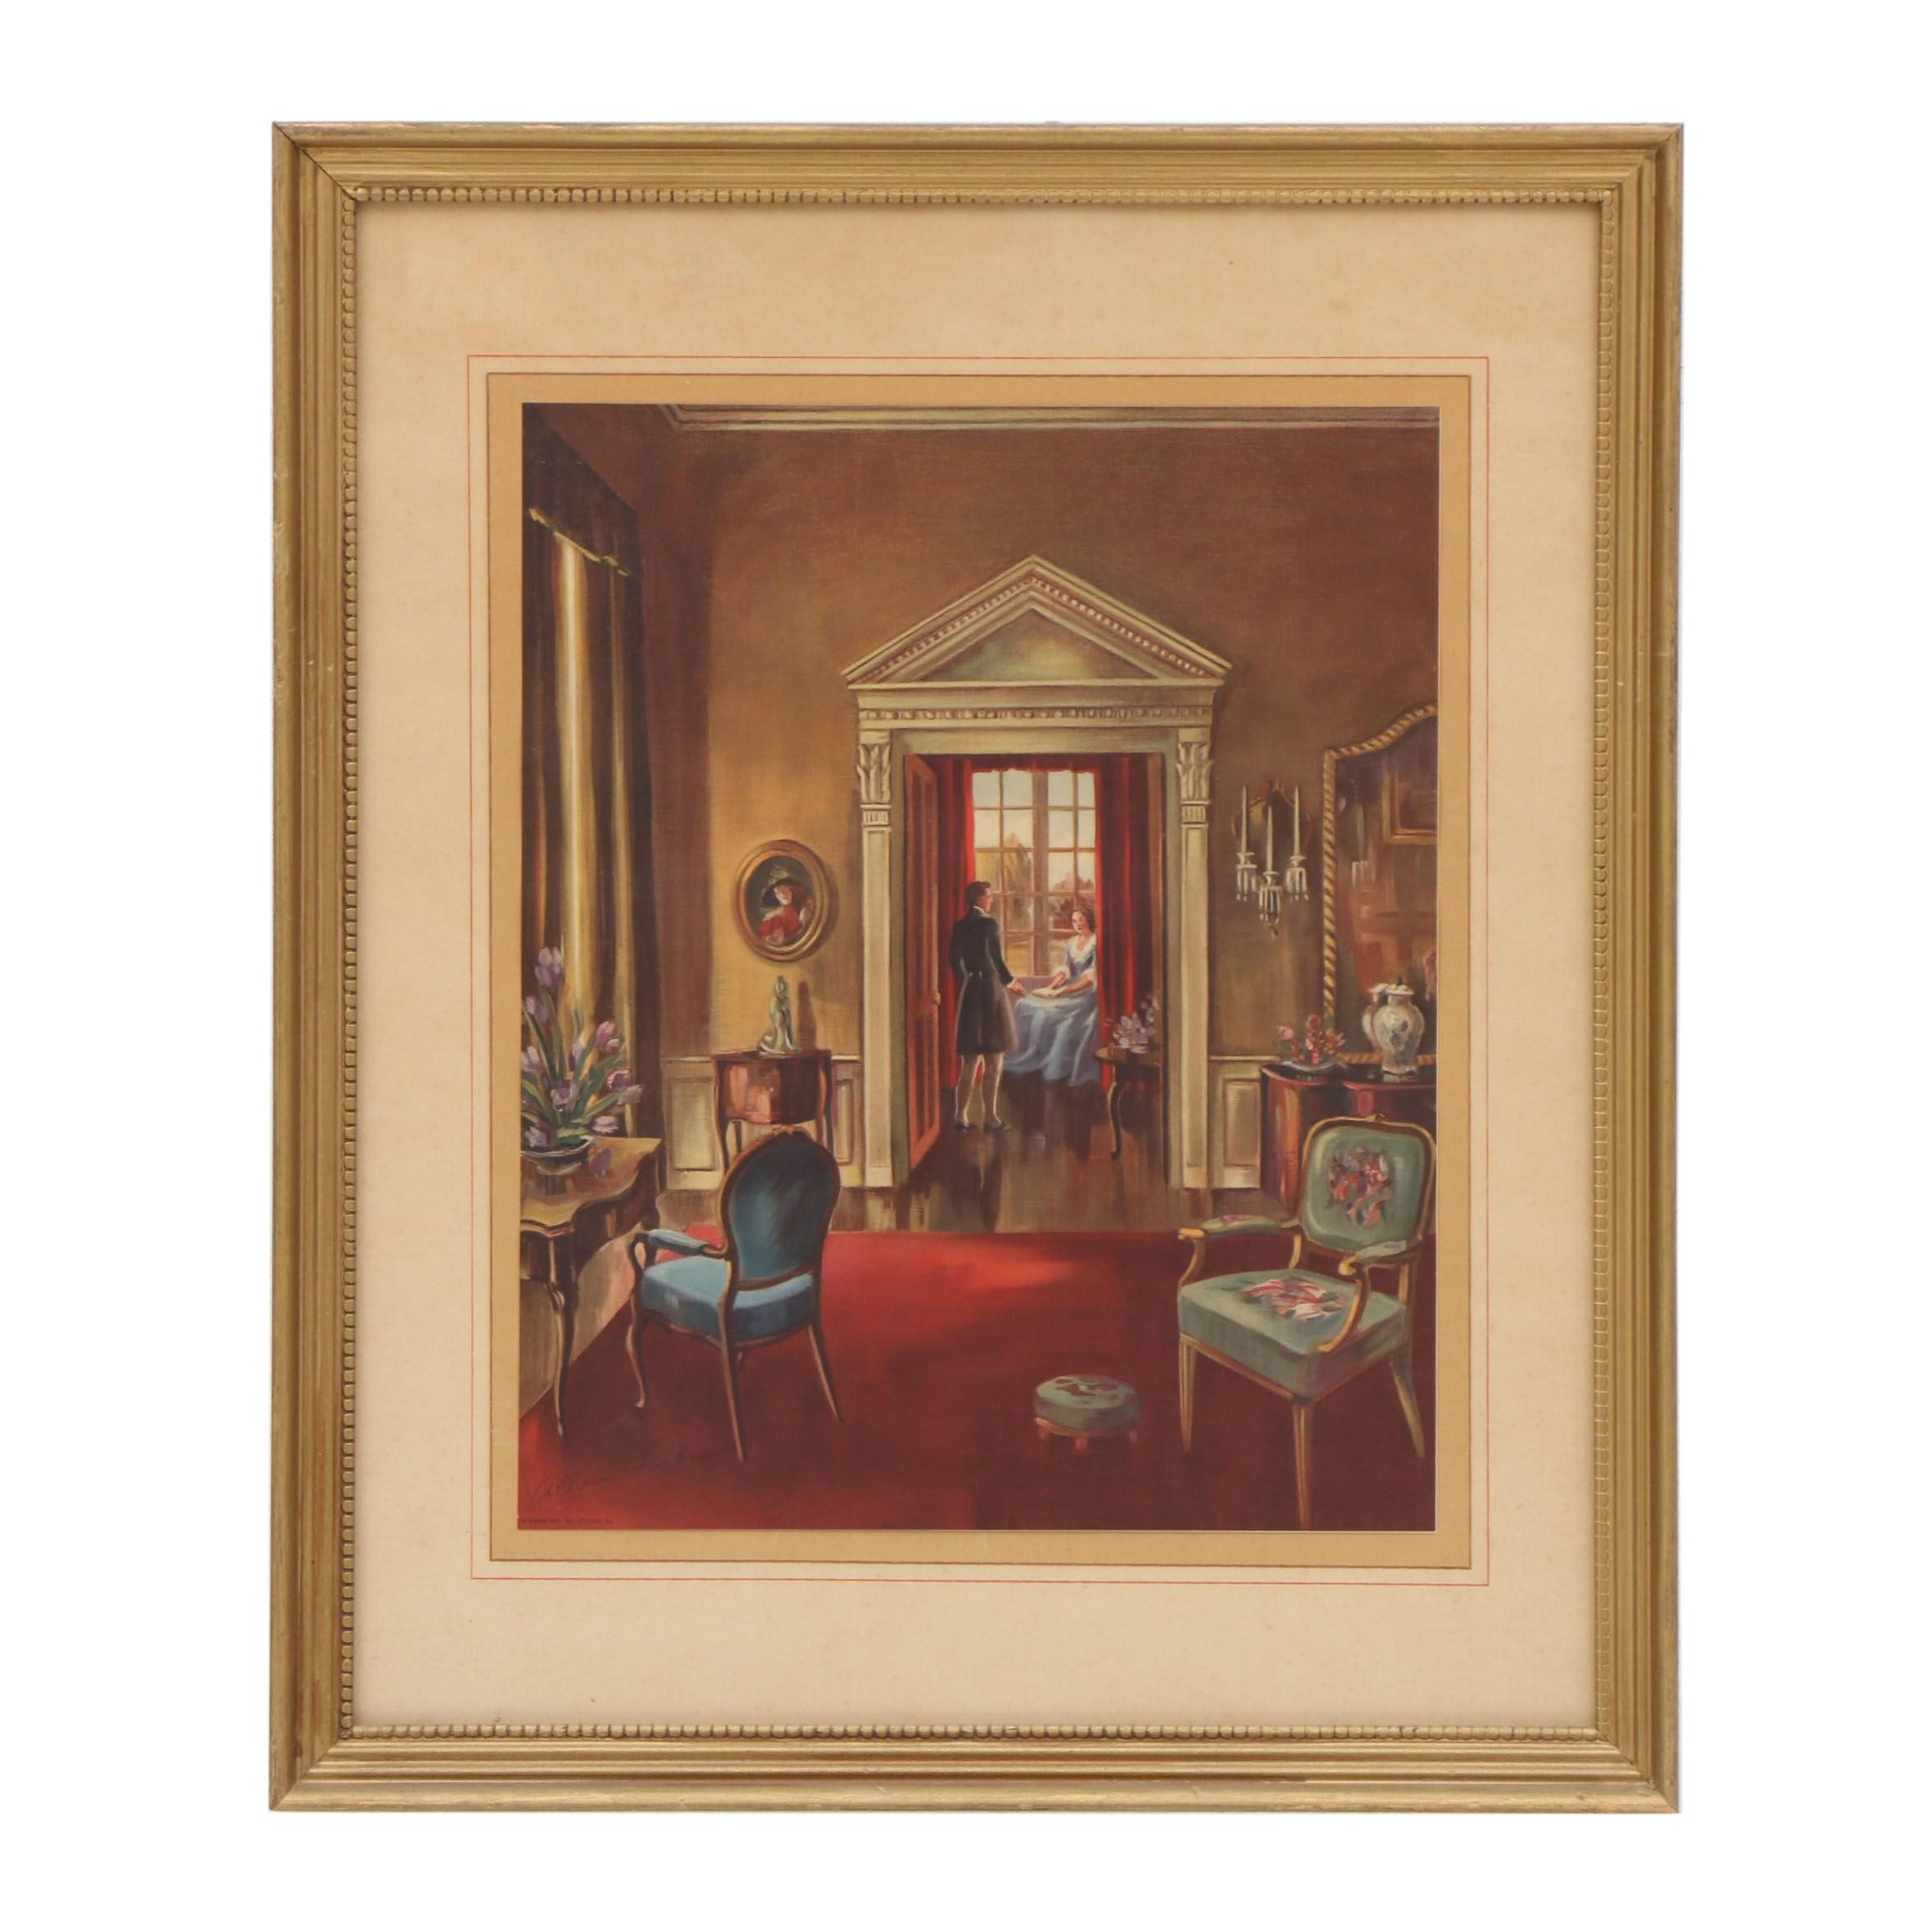 Allan Forbes Offset Lithograph of Interior Scene